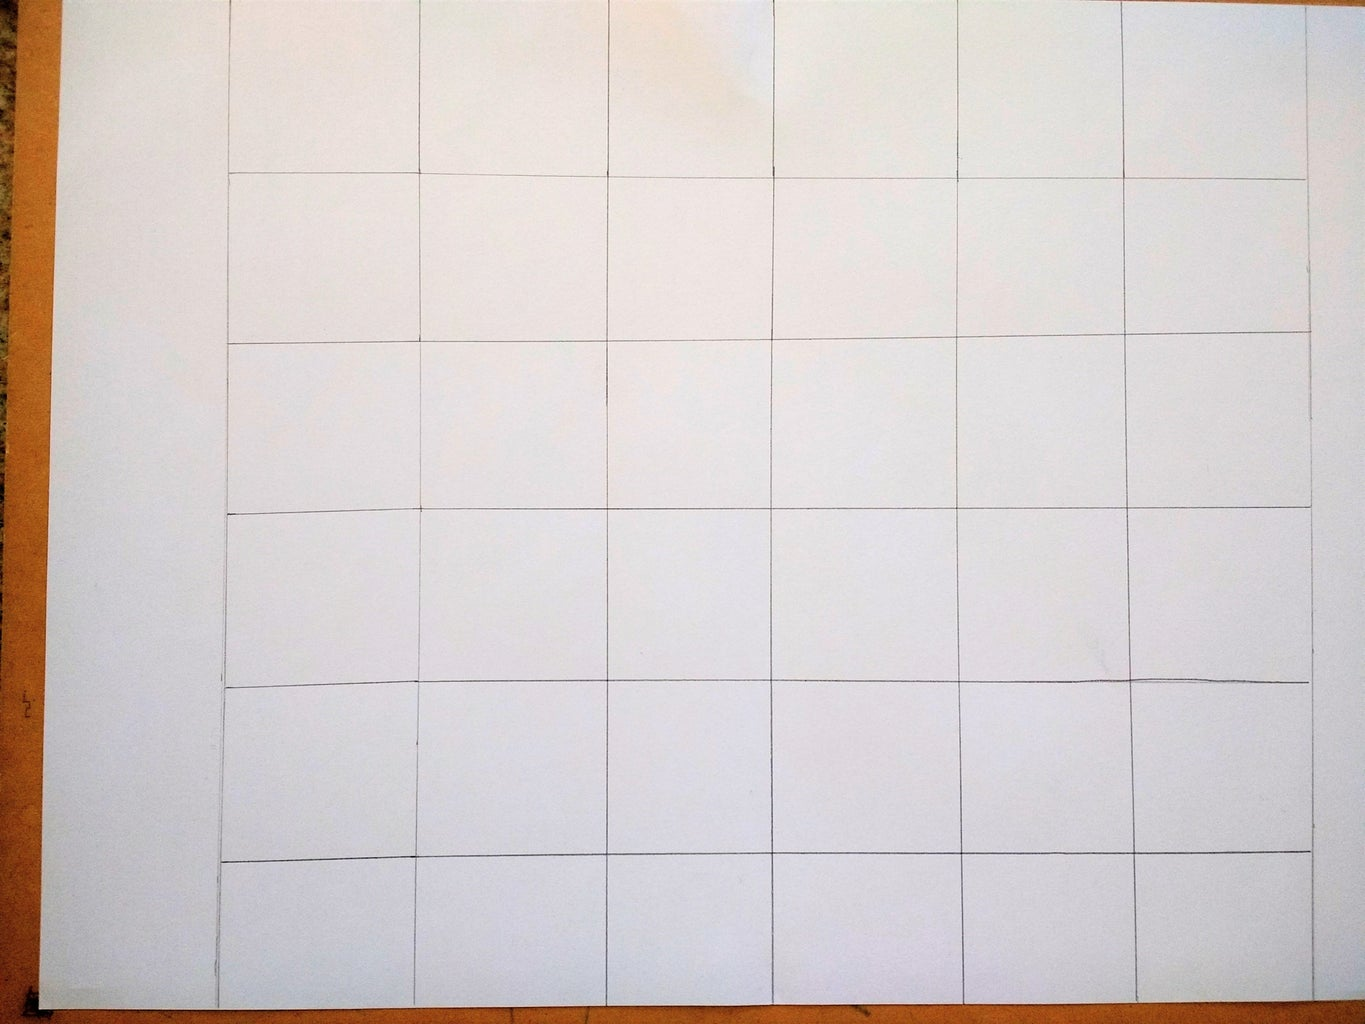 """Drawing the Bingo Squares on the """"Board"""""""